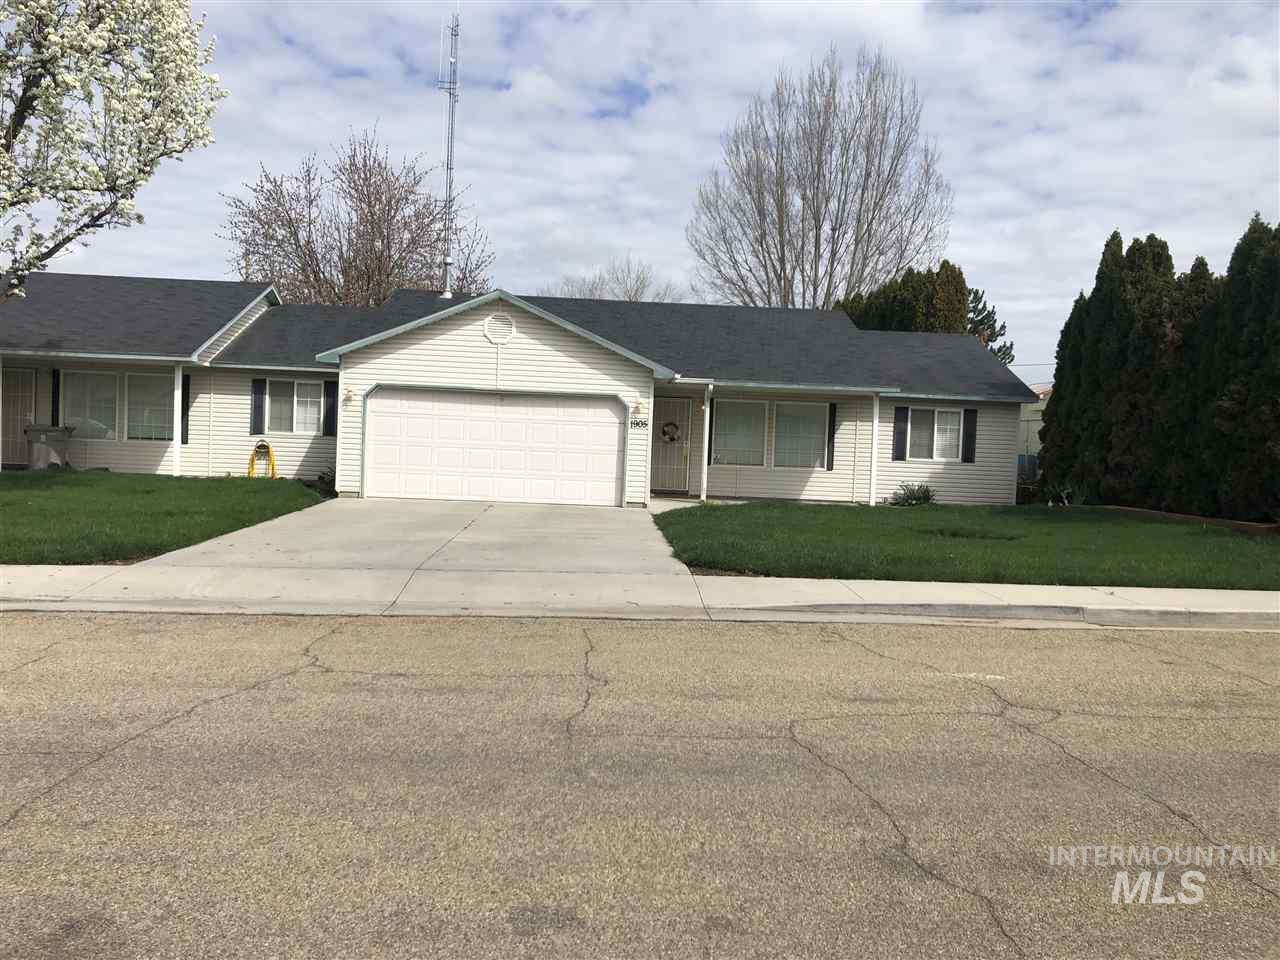 Terrace Dr., Caldwell, Idaho 83605, 3 Bedrooms, 2 Bathrooms, Residential Income For Sale, Price $280,000, 98725459